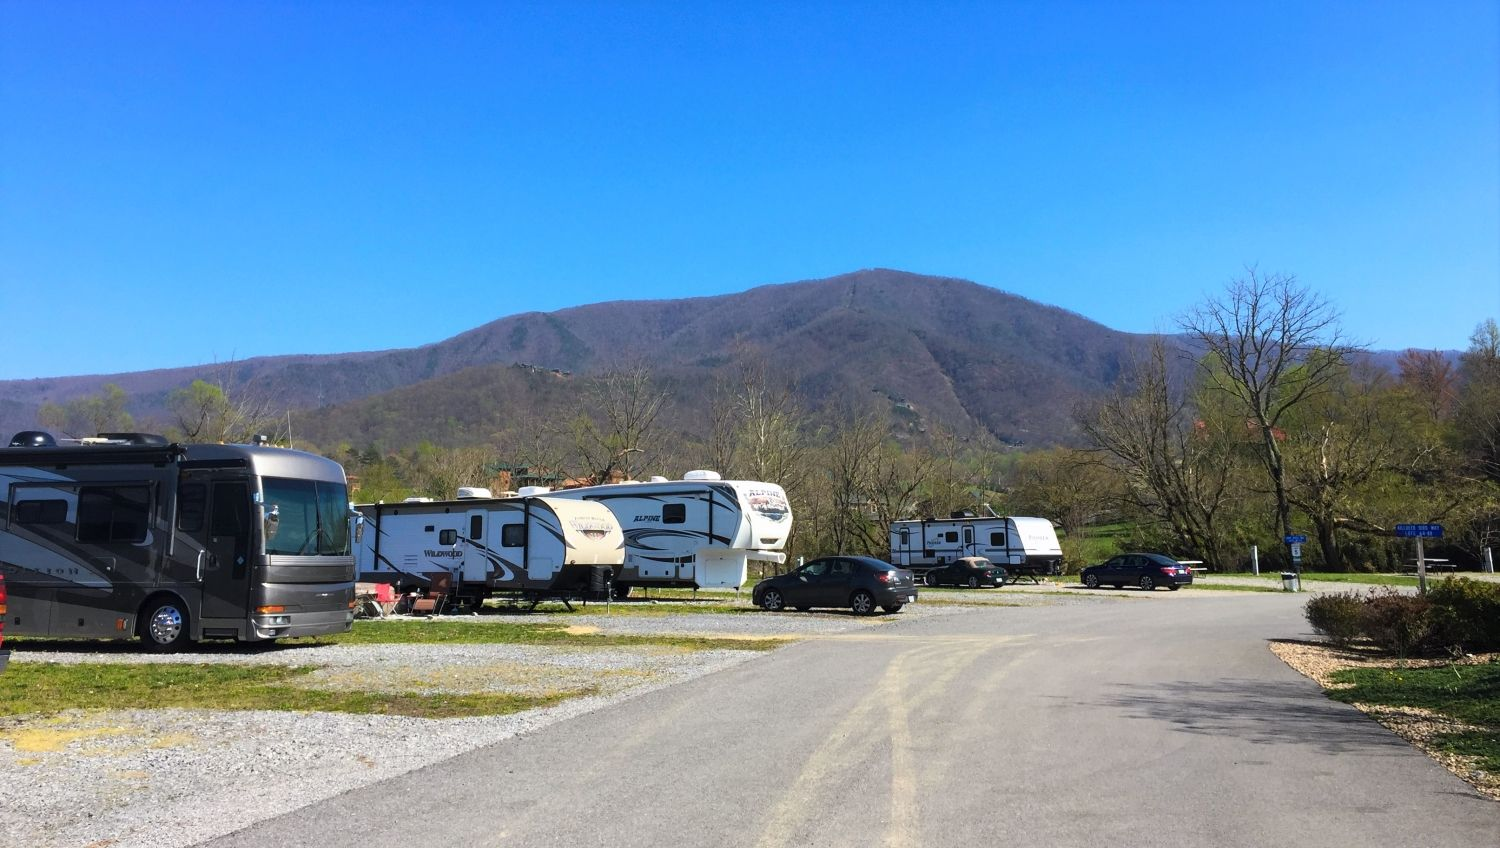 7 Best Rv Parks Campgrounds In The Pigeon Forge Area With Images Best Rv Parks Rv Parks And Campgrounds Rv Parks